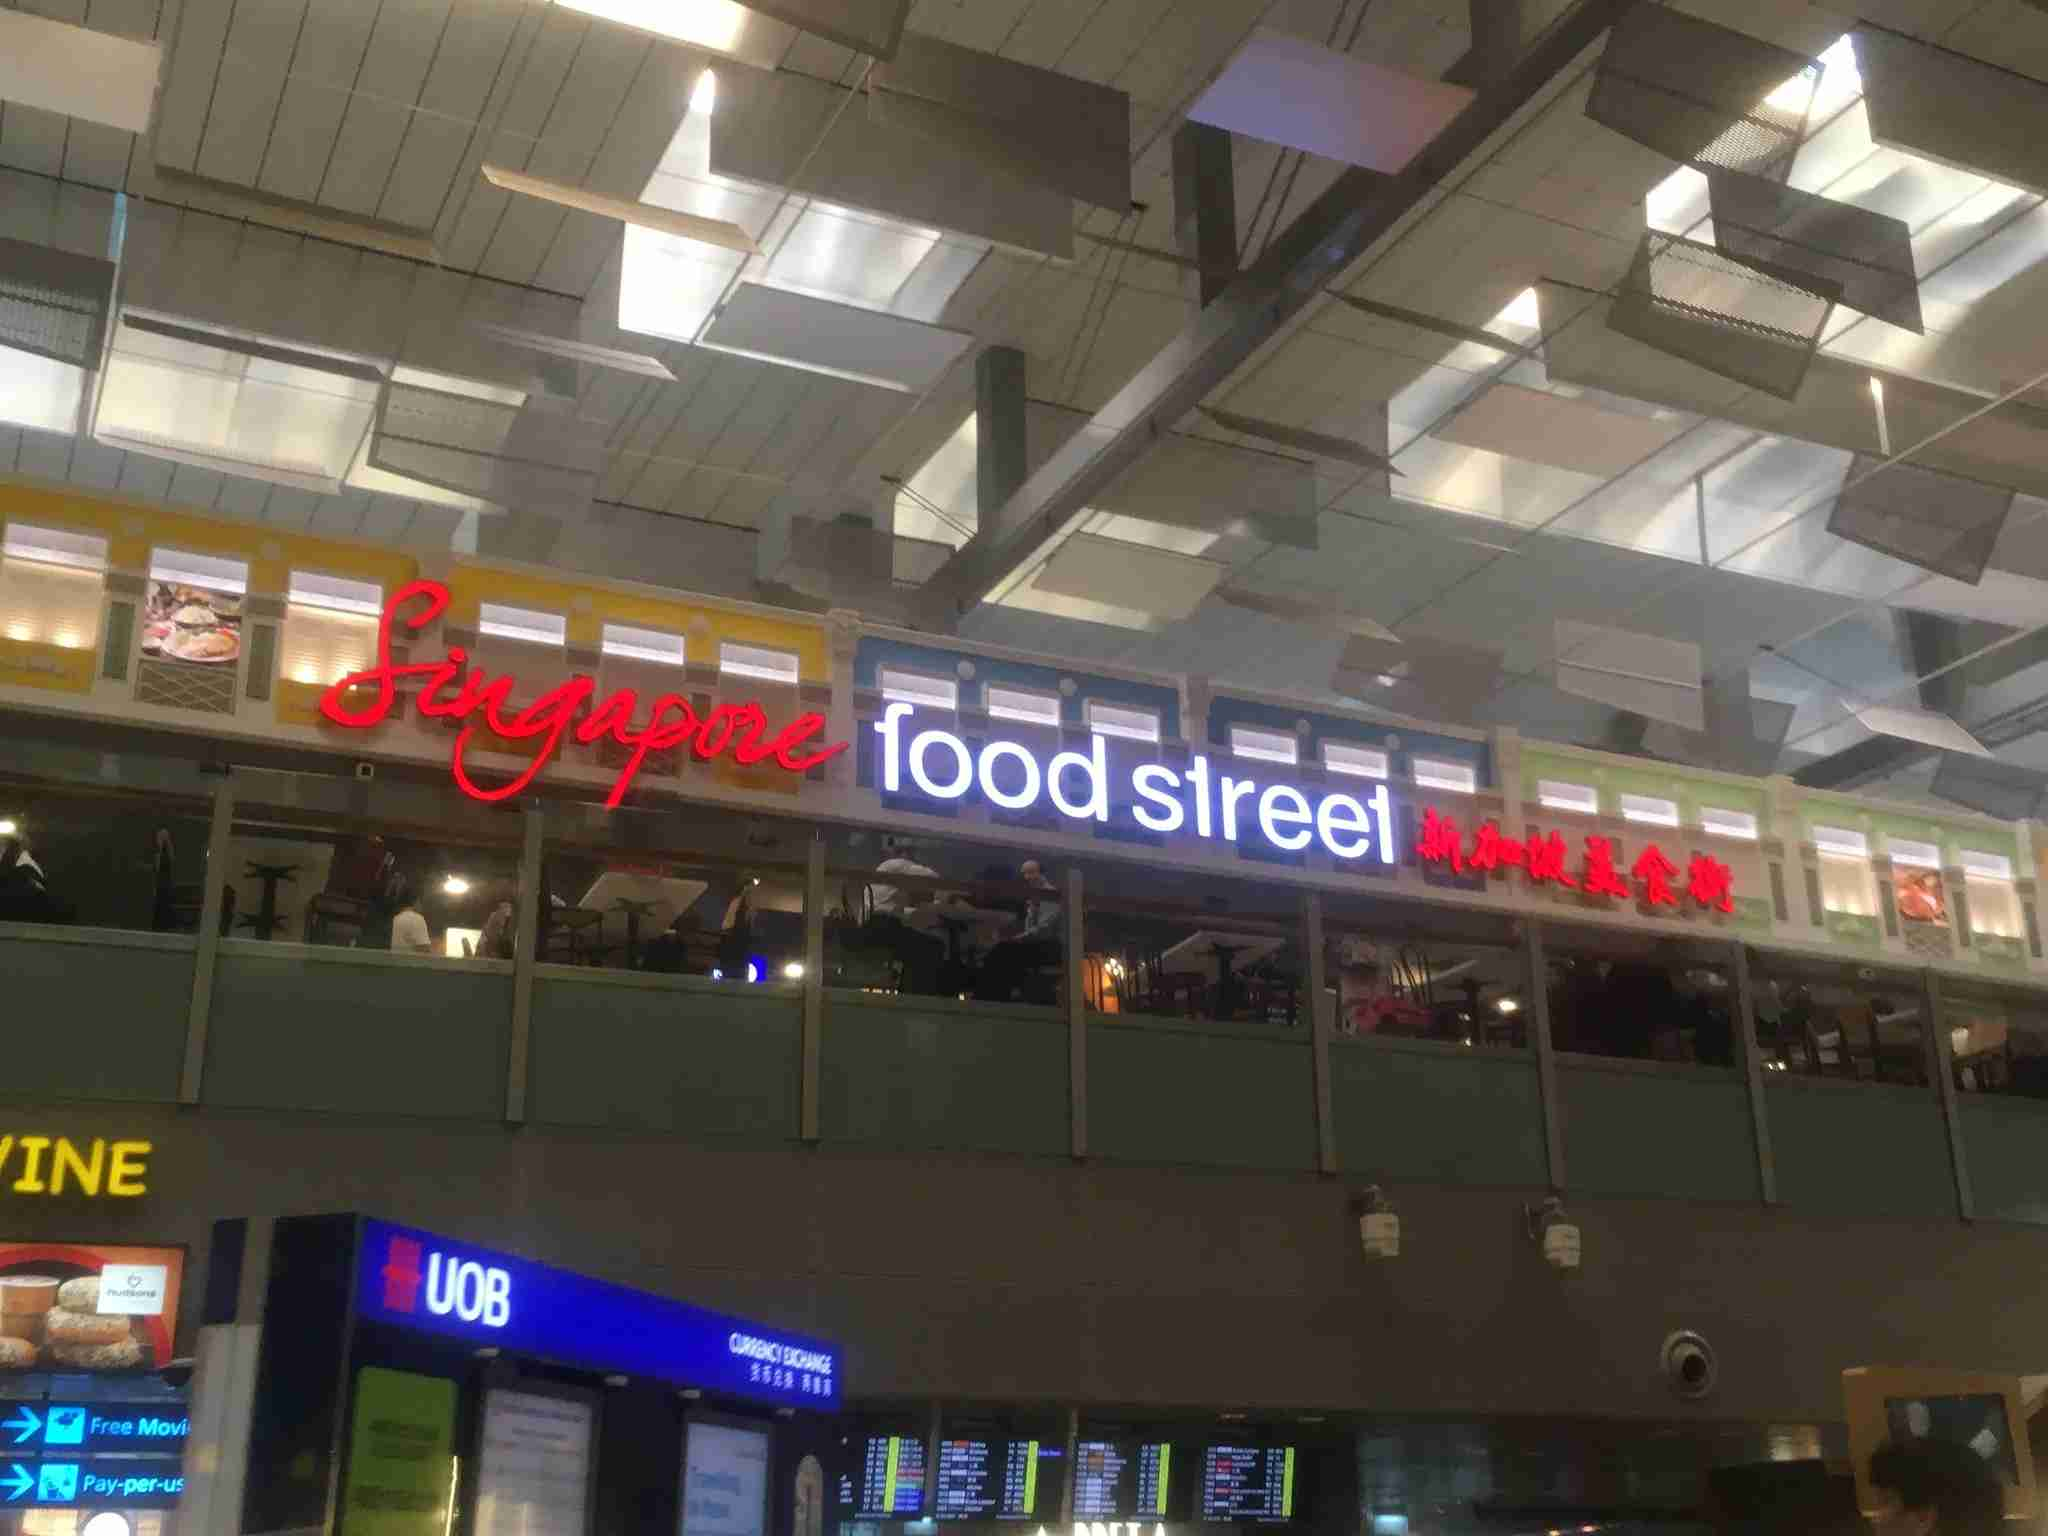 The street food concession at Singapore